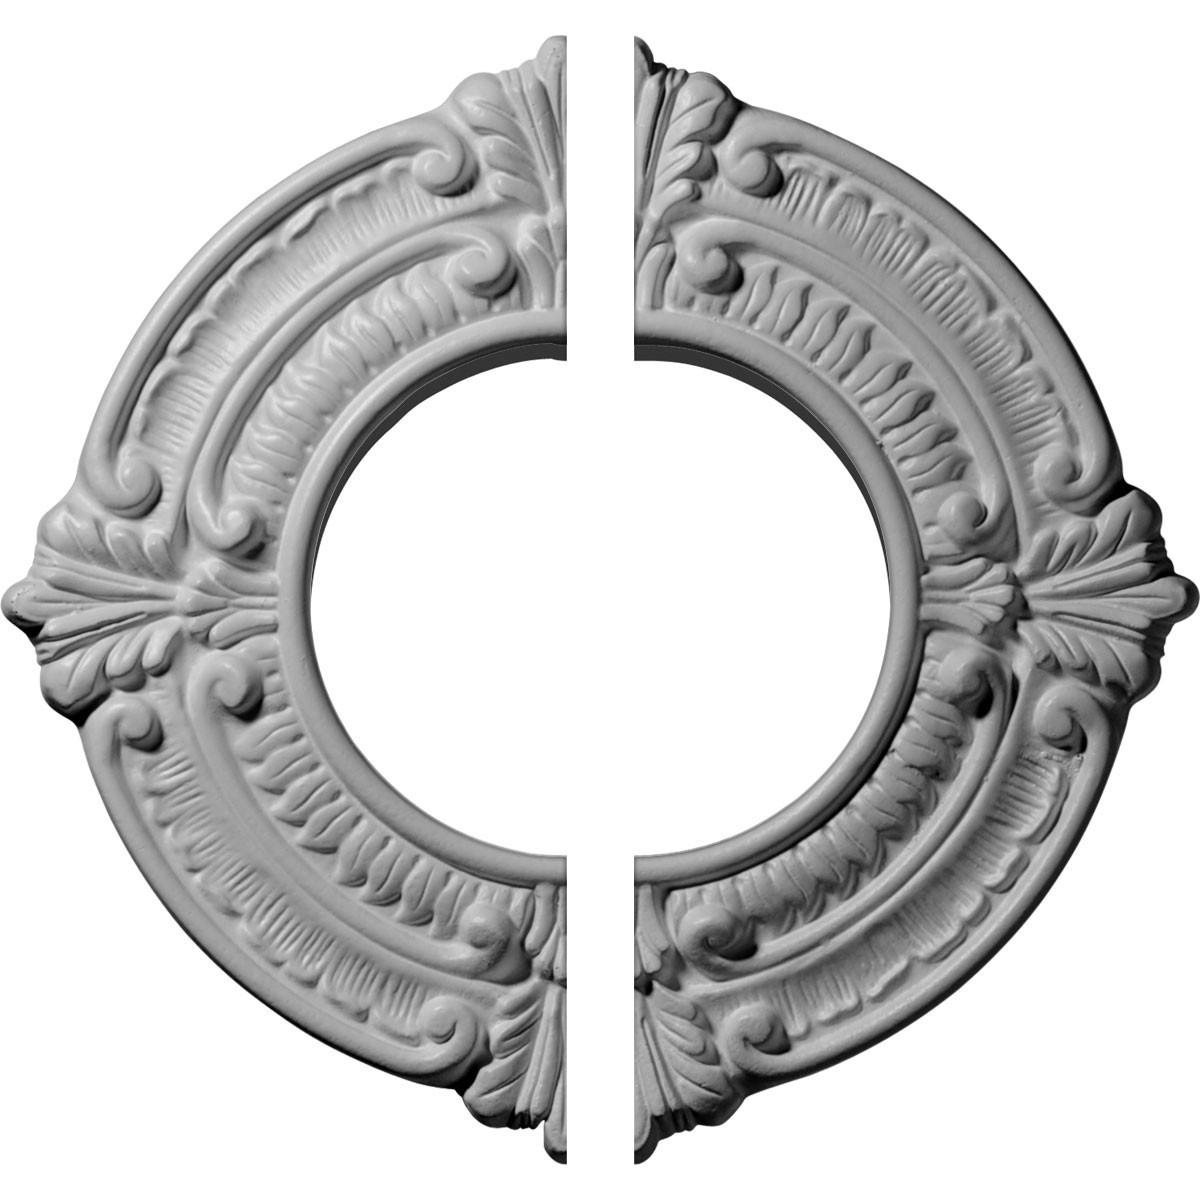 """EM-CM09BN2 - 9""""OD x 4 1/8""""ID x 5/8""""P Benson Ceiling Medallion, Two Piece (Fits Canopies up to 4 1/8"""")"""